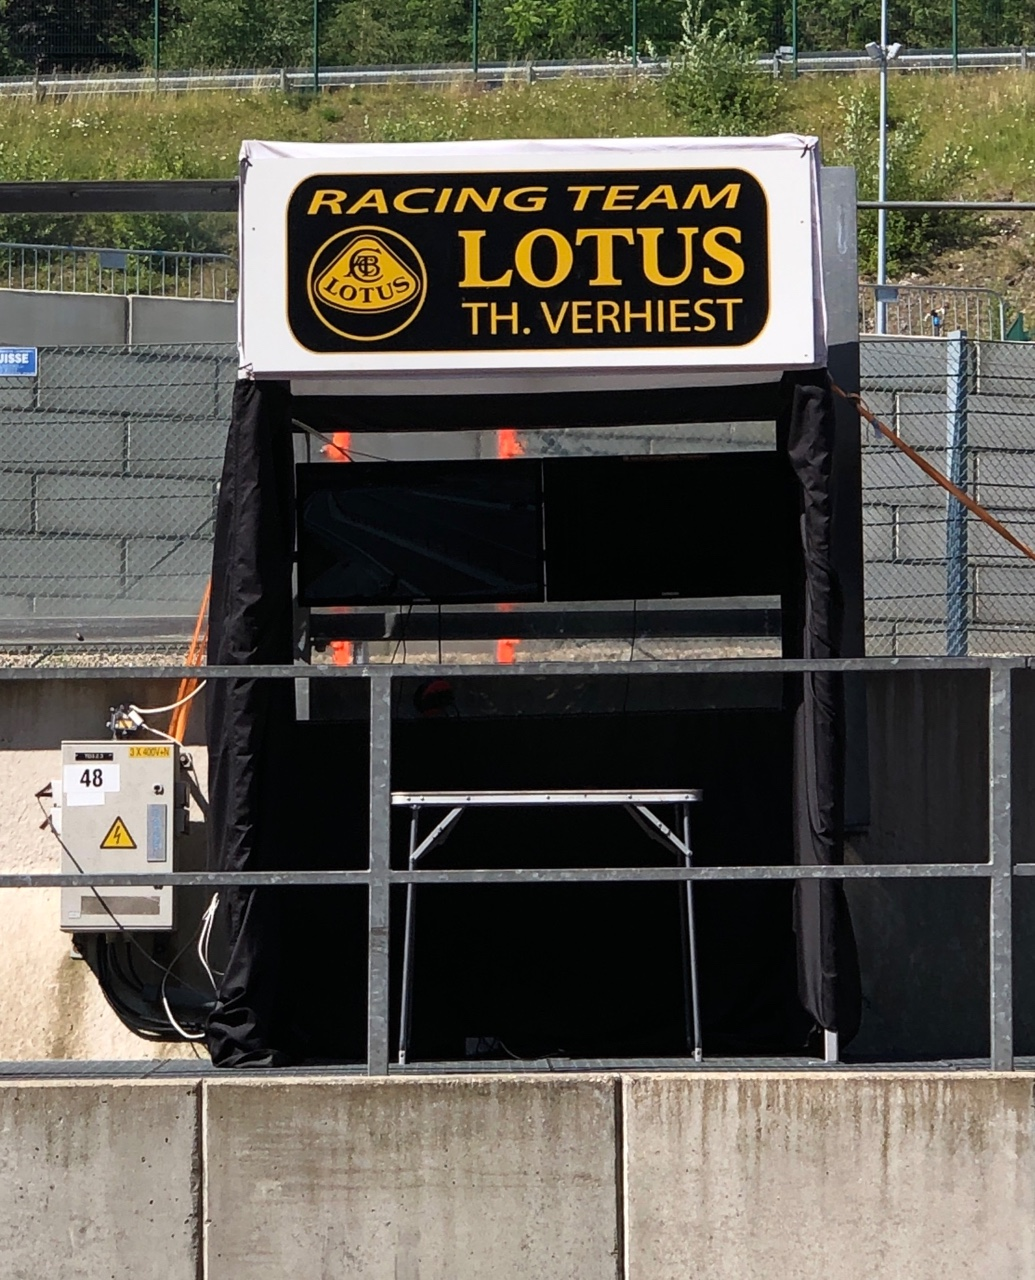 LCE 2019 Racing Team Lotus Verhiest (2).jpg